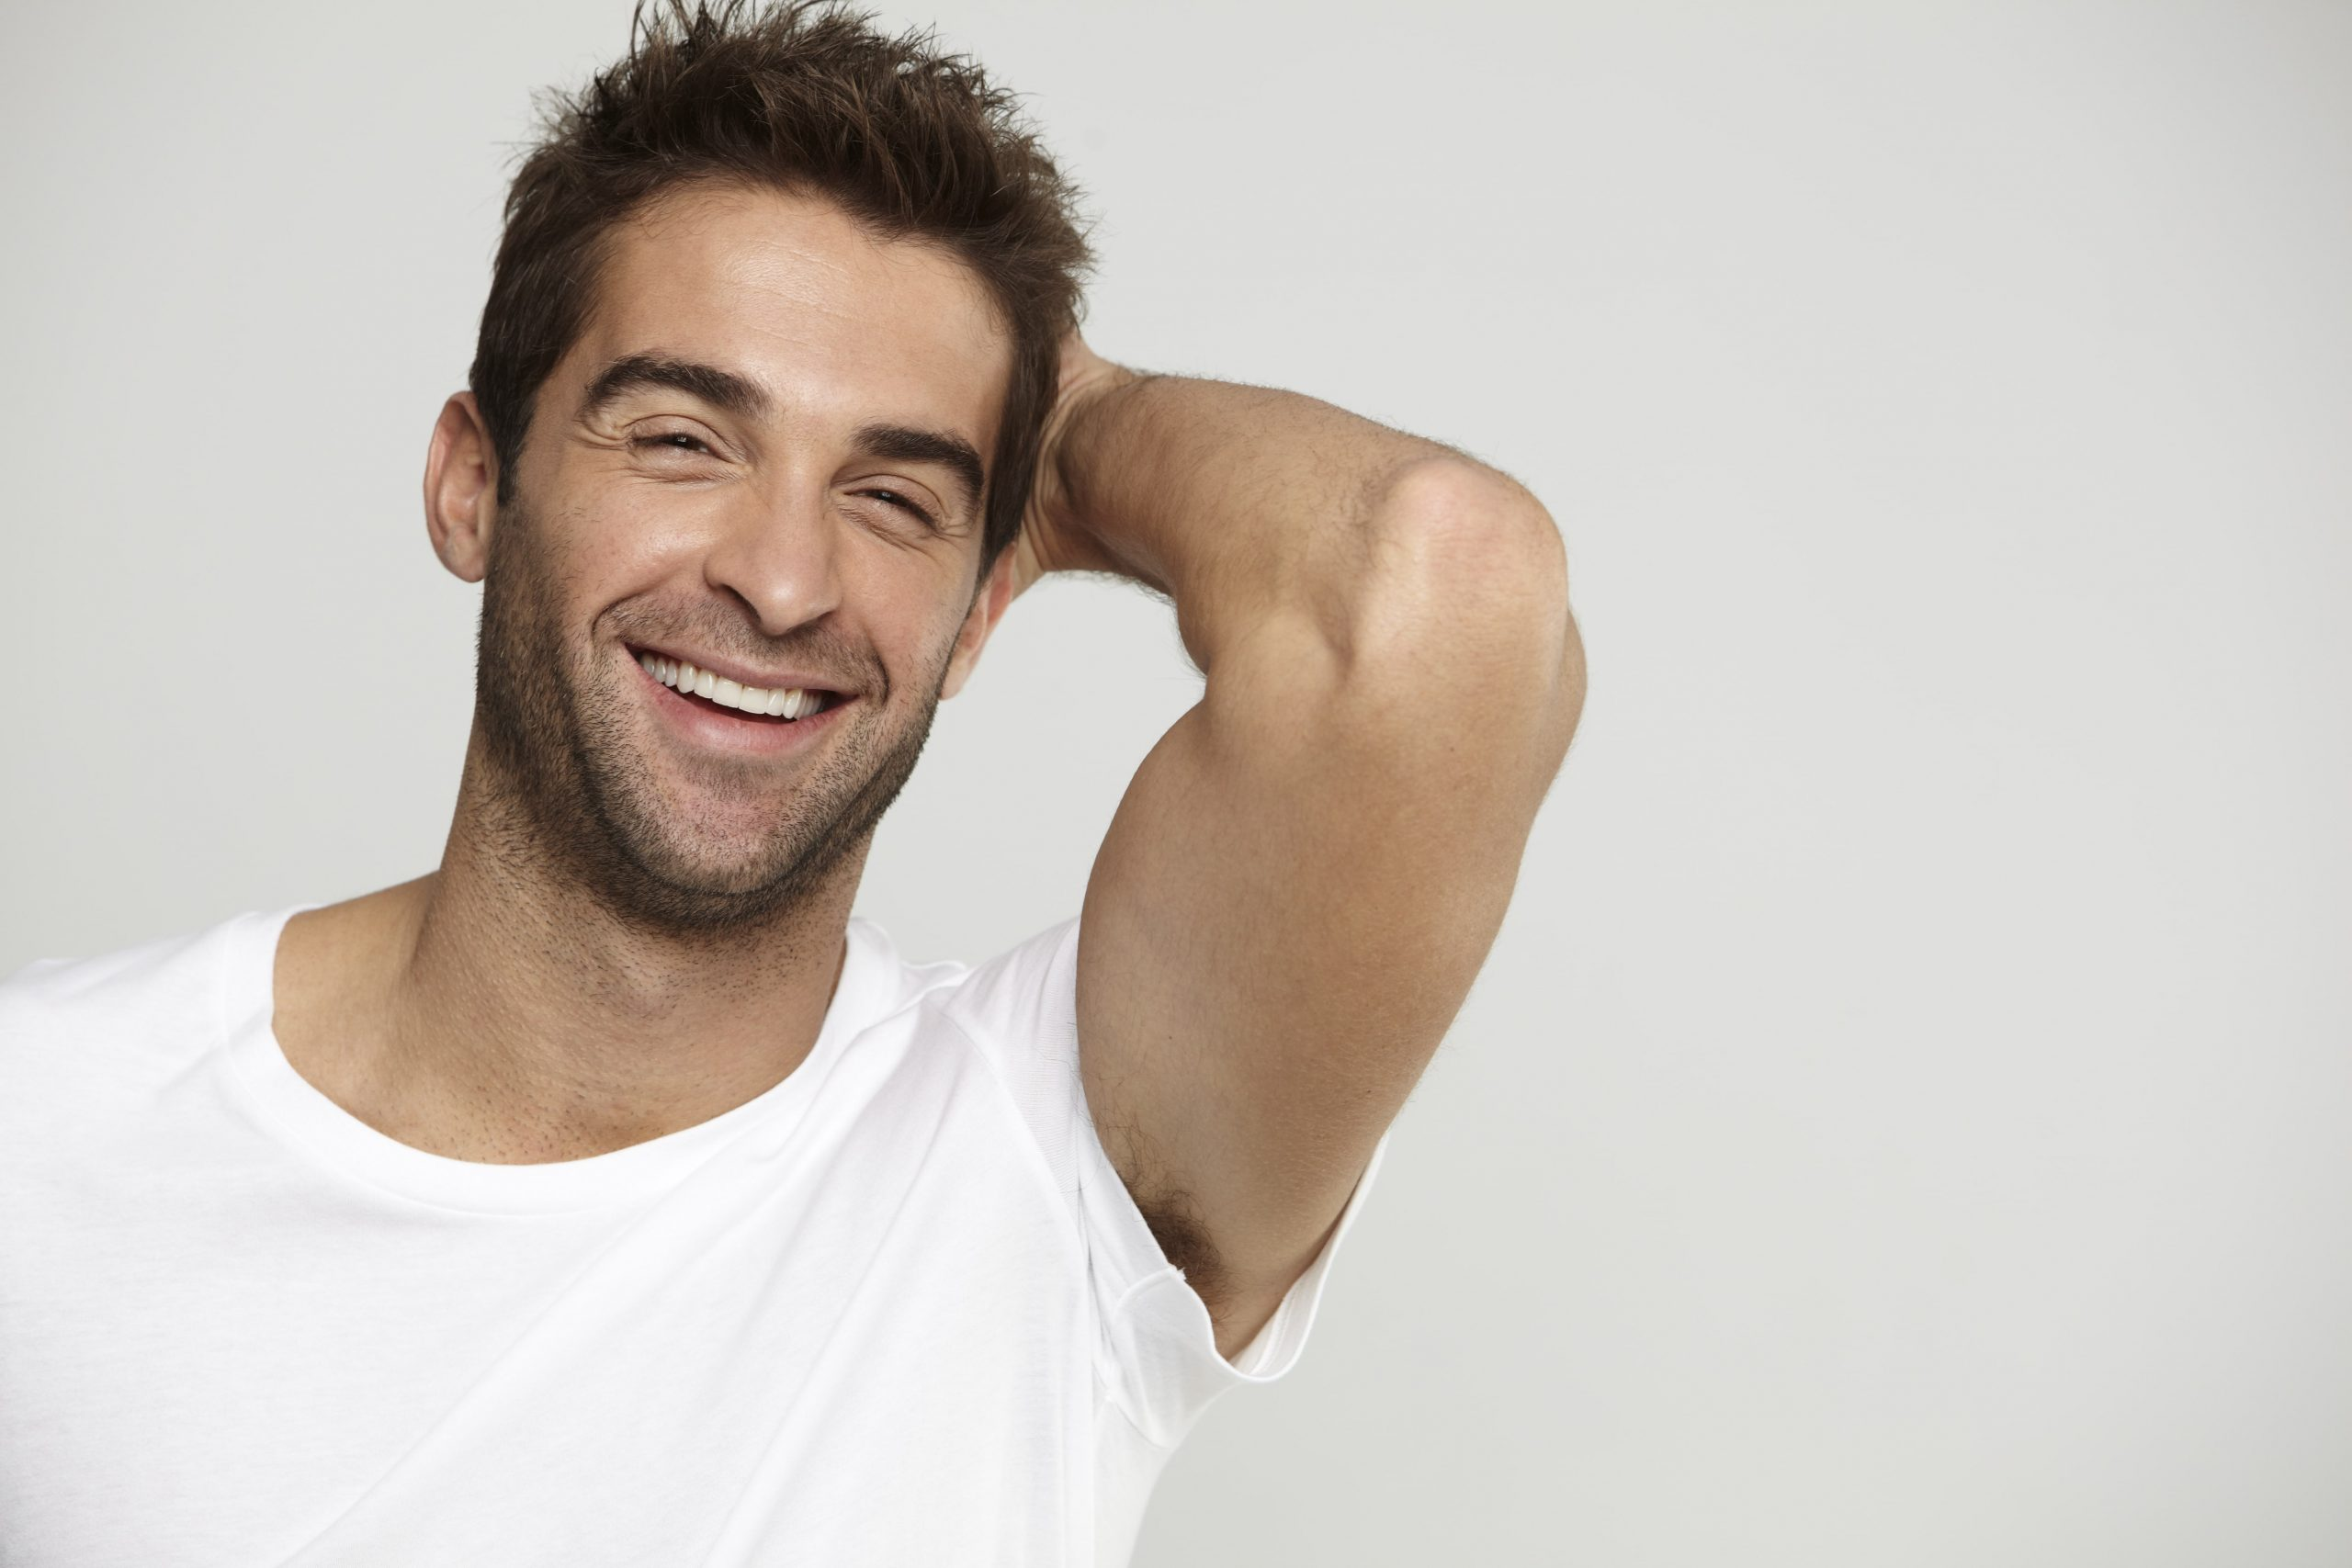 5 Things Men Ask When Considering Plastic Surgery